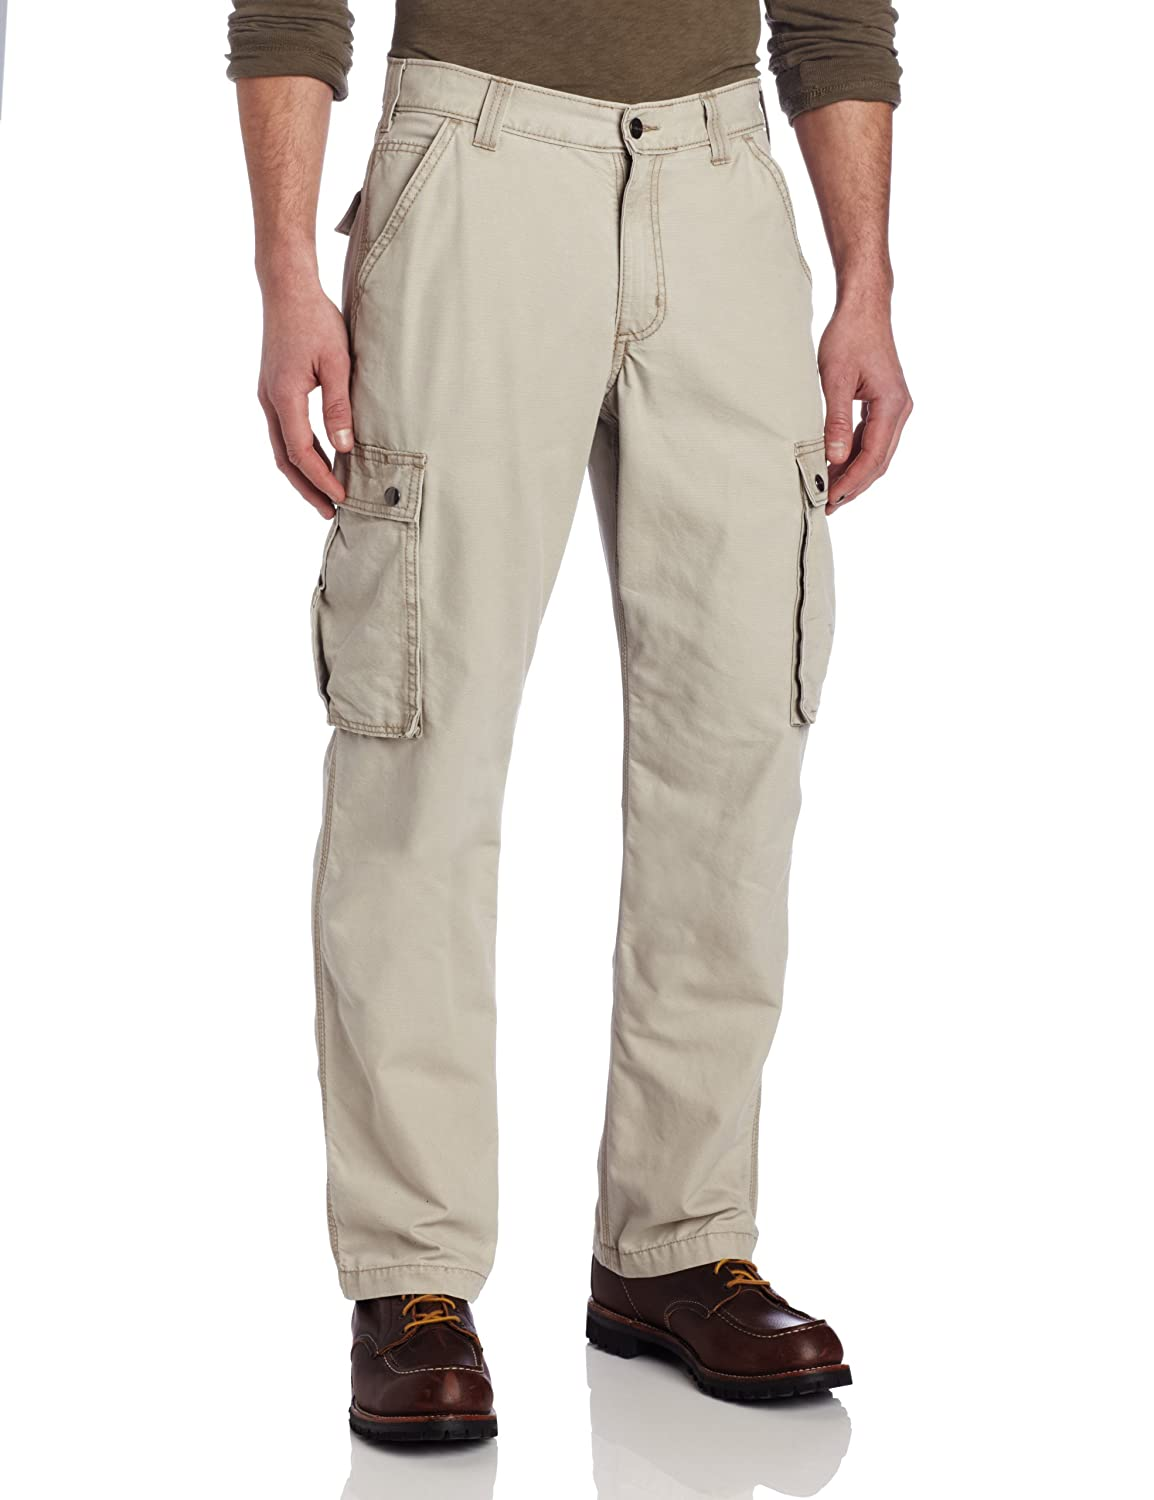 Carhartt Men's Rugged Cargo Pant in Relaxed Fit Carhartt Sportswear - Mens 100272